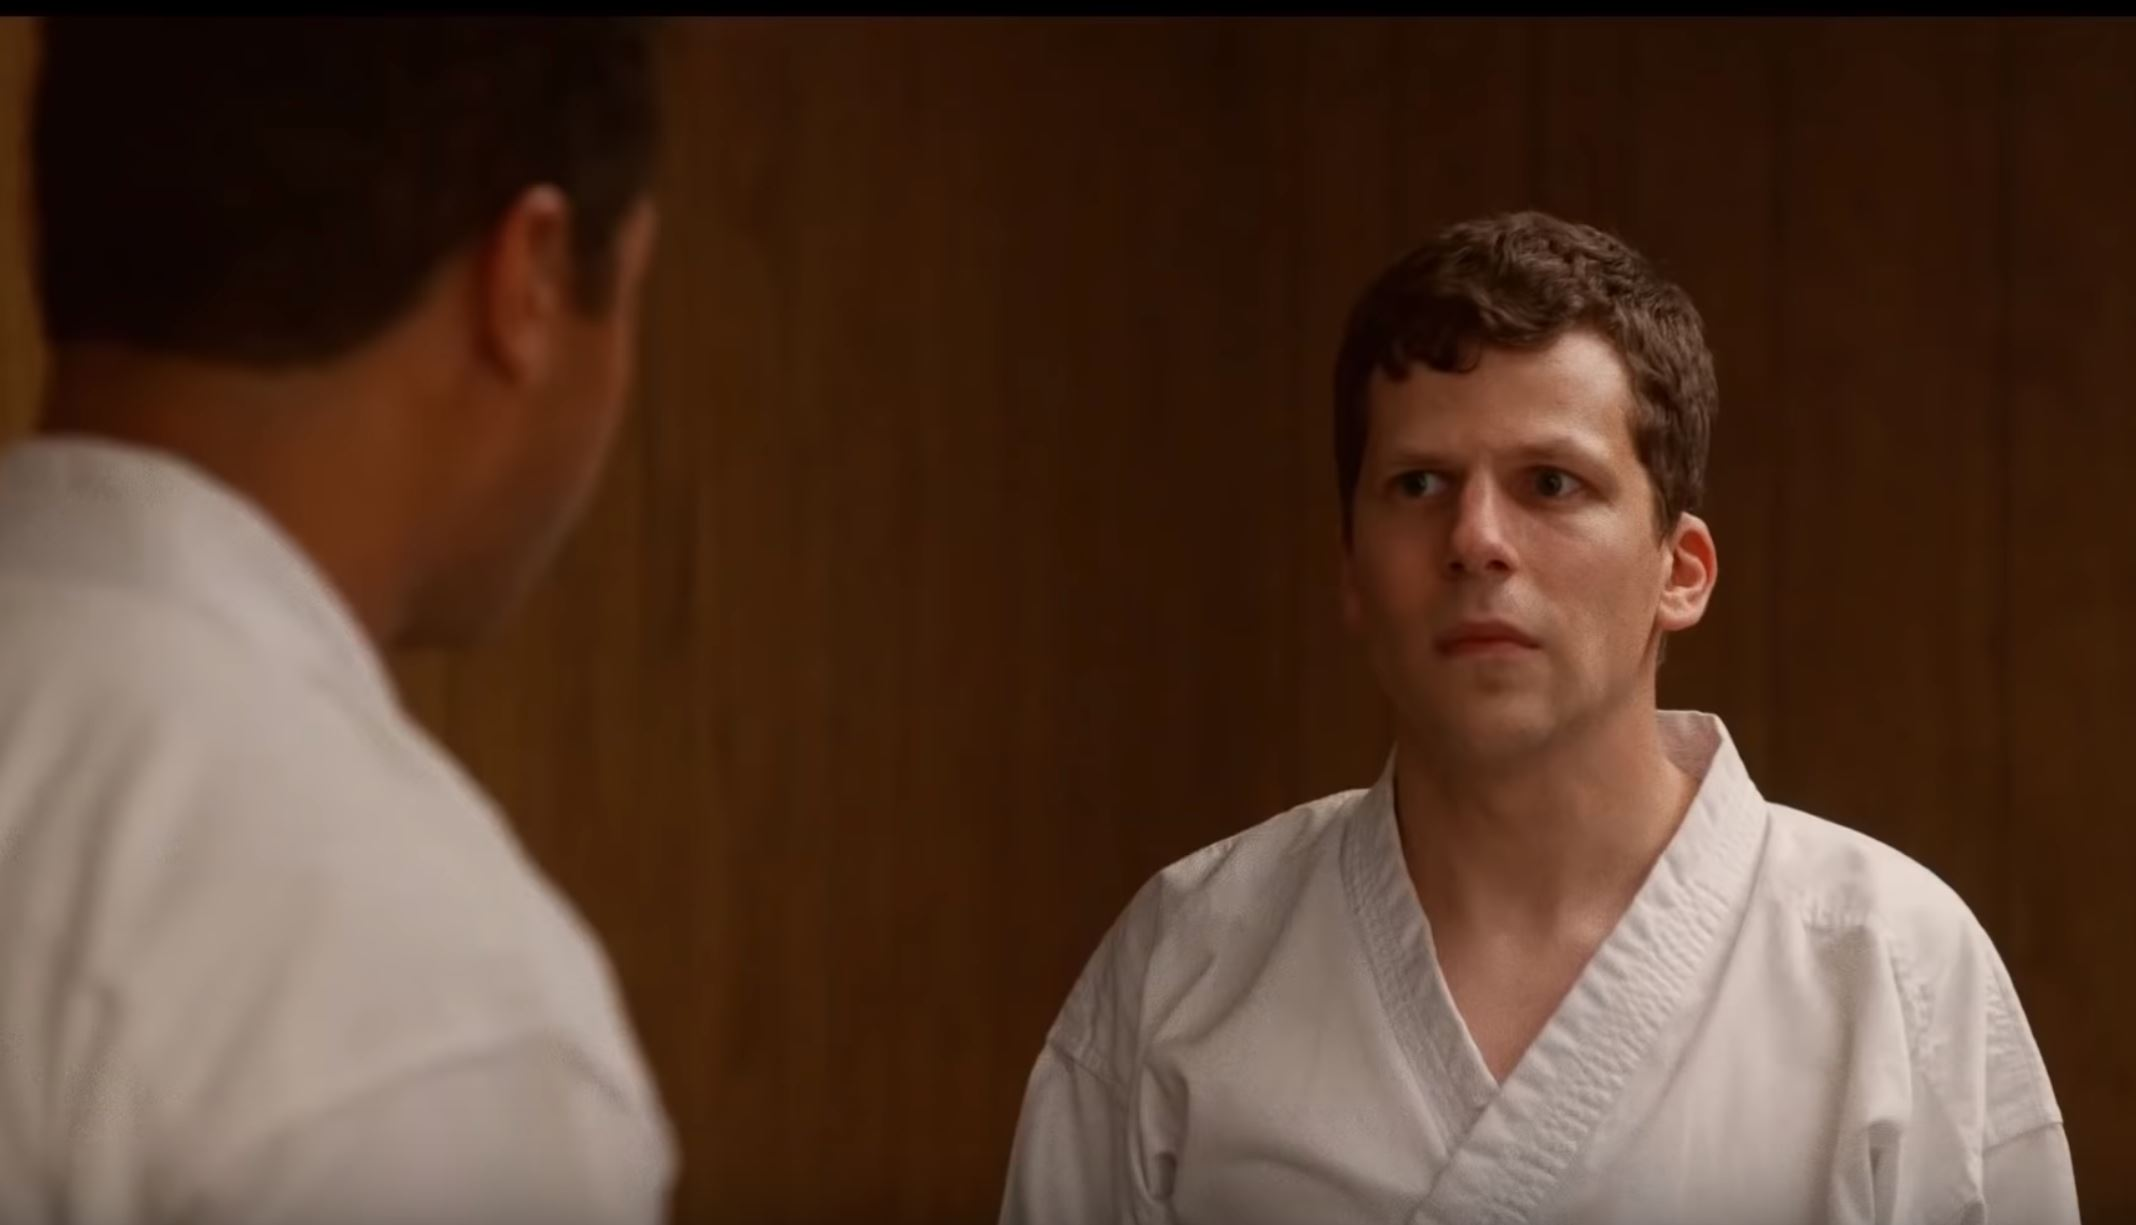 THE ART OF SELF DEFENSE Trailer feat. Jesse Eisenberg